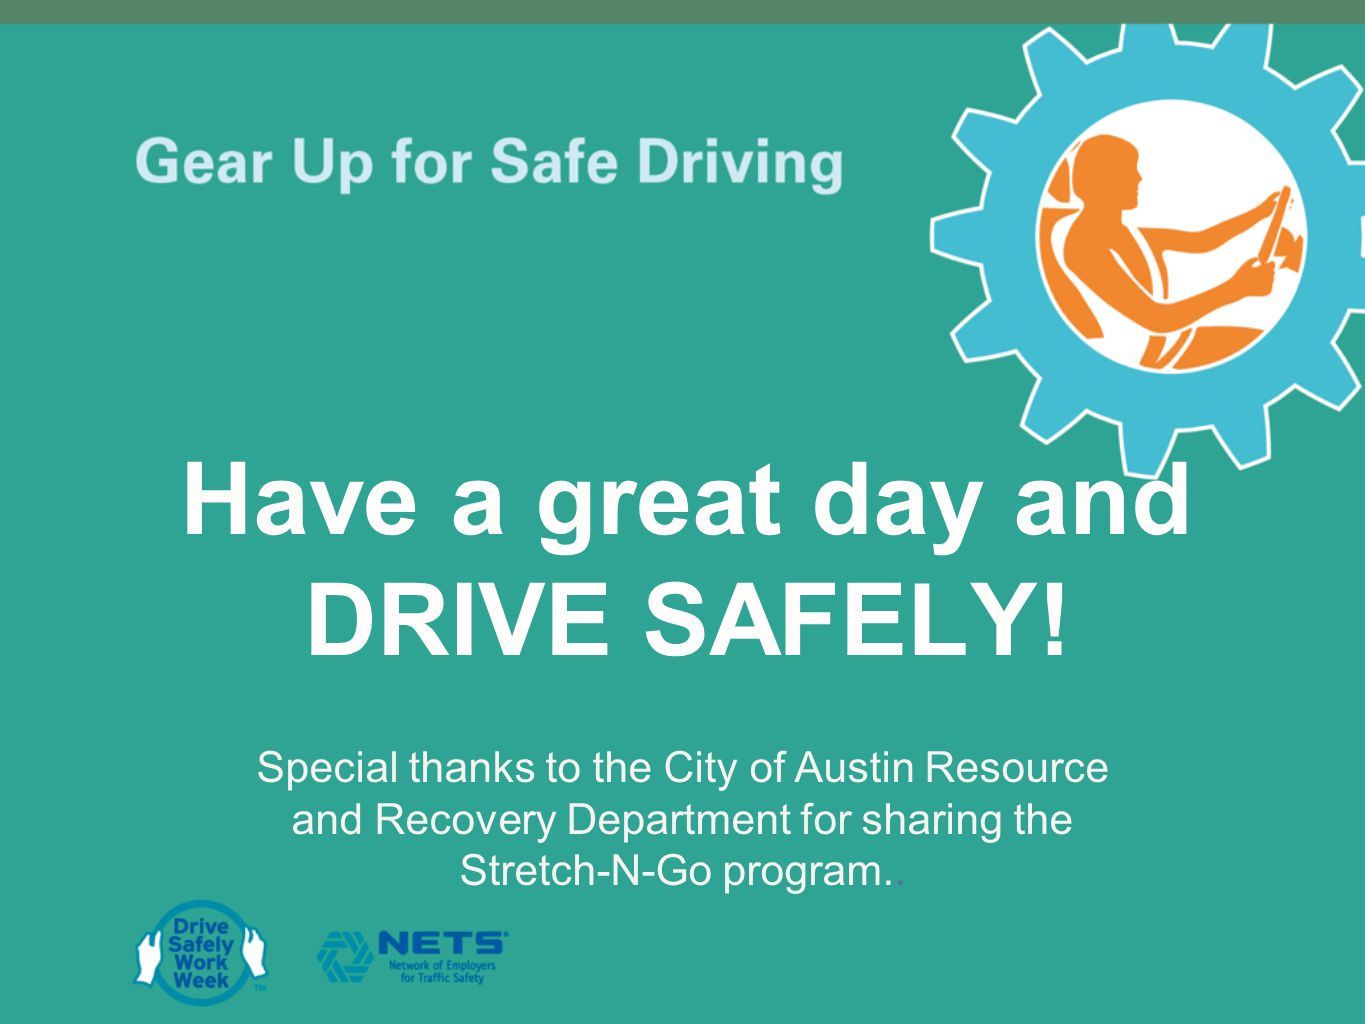 Have a great day and DRIVE SAFELY.